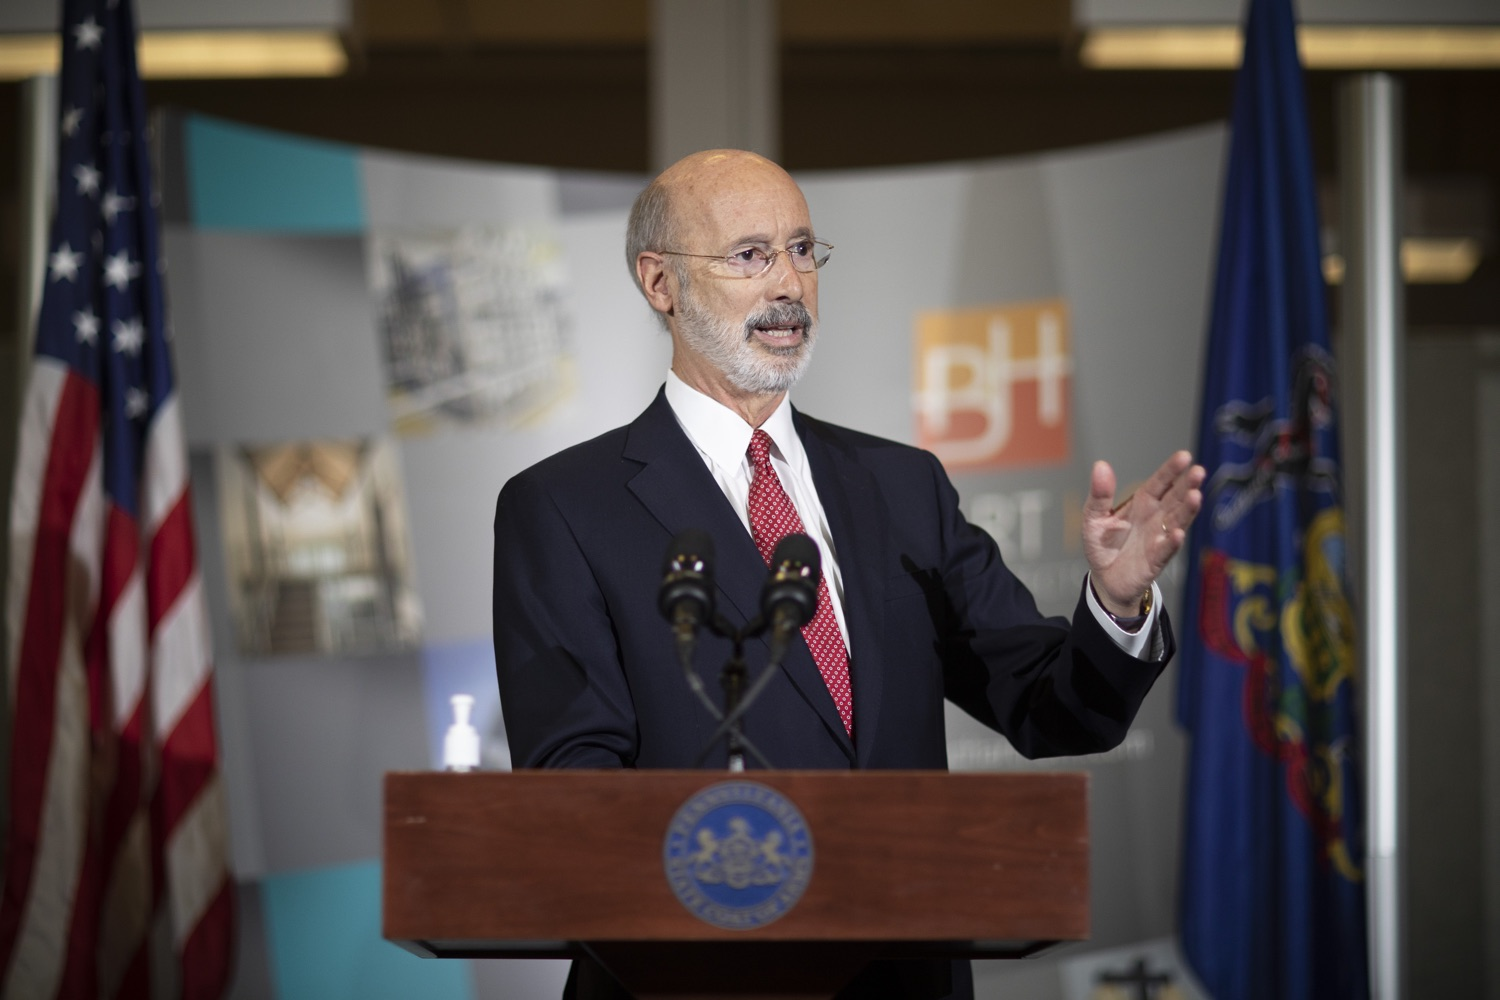 "<a href=""https://filesource.wostreaming.net/commonwealthofpa/photo/18250_gov_covidFunding_dz_001.jpg"" target=""_blank"">⇣ Download Photo<br></a>Pennsylvania Governor Tom Wolf speaking to the press.  As small businesses continue to feel an economic impact of the COVID-19 public health crisis, Governor Tom Wolf today called on the General Assembly to provide additional funding to support these businesses. The governor was joined by the York County Economic Alliance, local elected officials and business advocates.  York, PA  September 10, 2020"